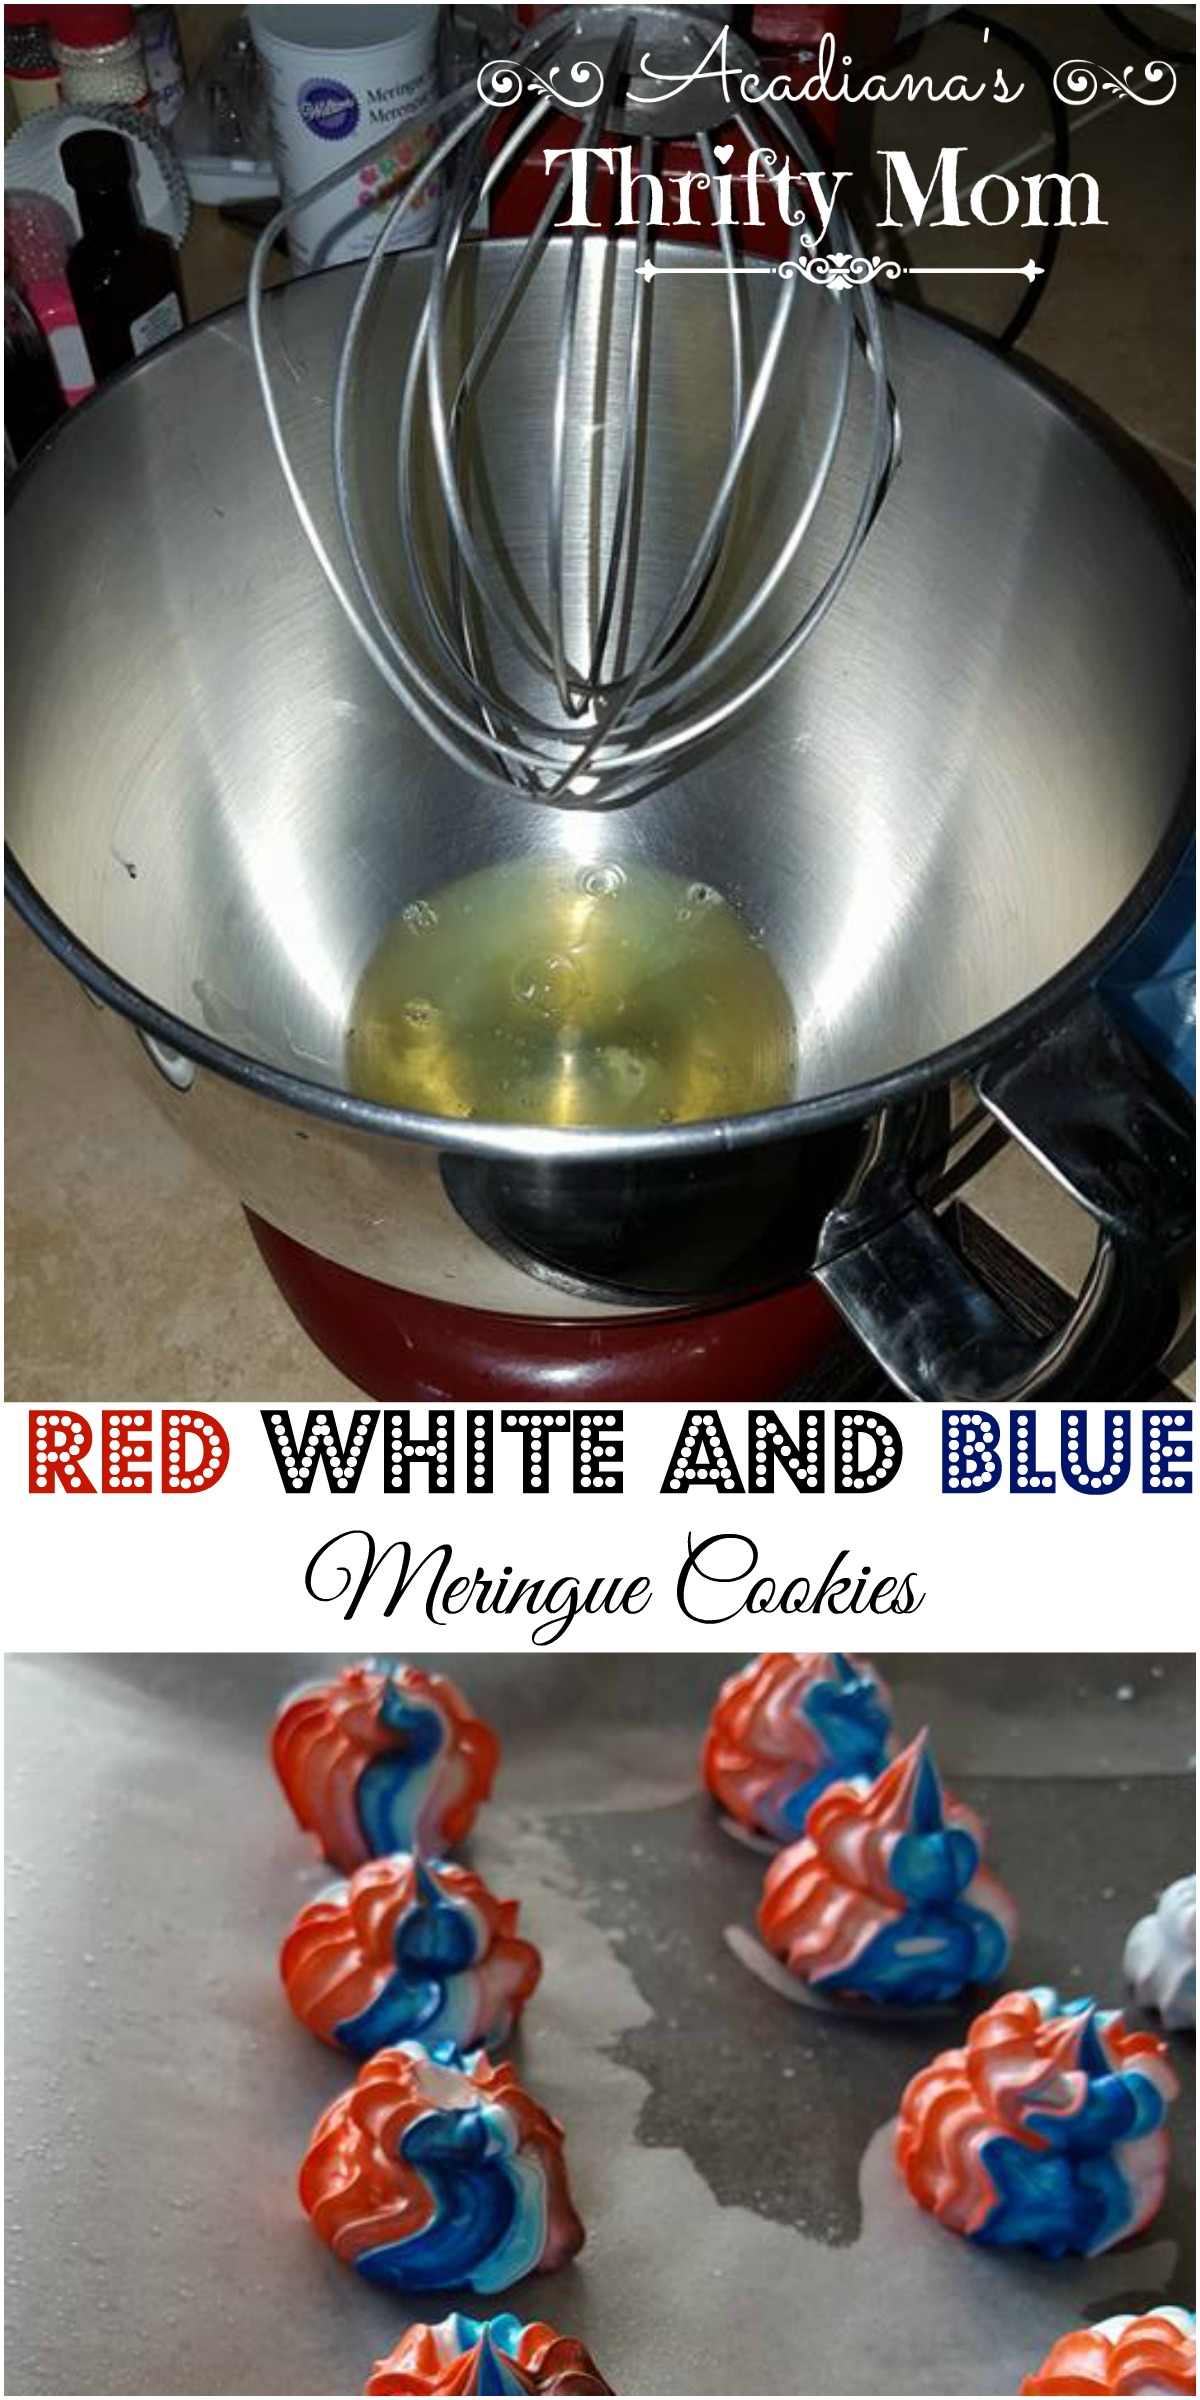 Red White And Blue Meringue Cookies